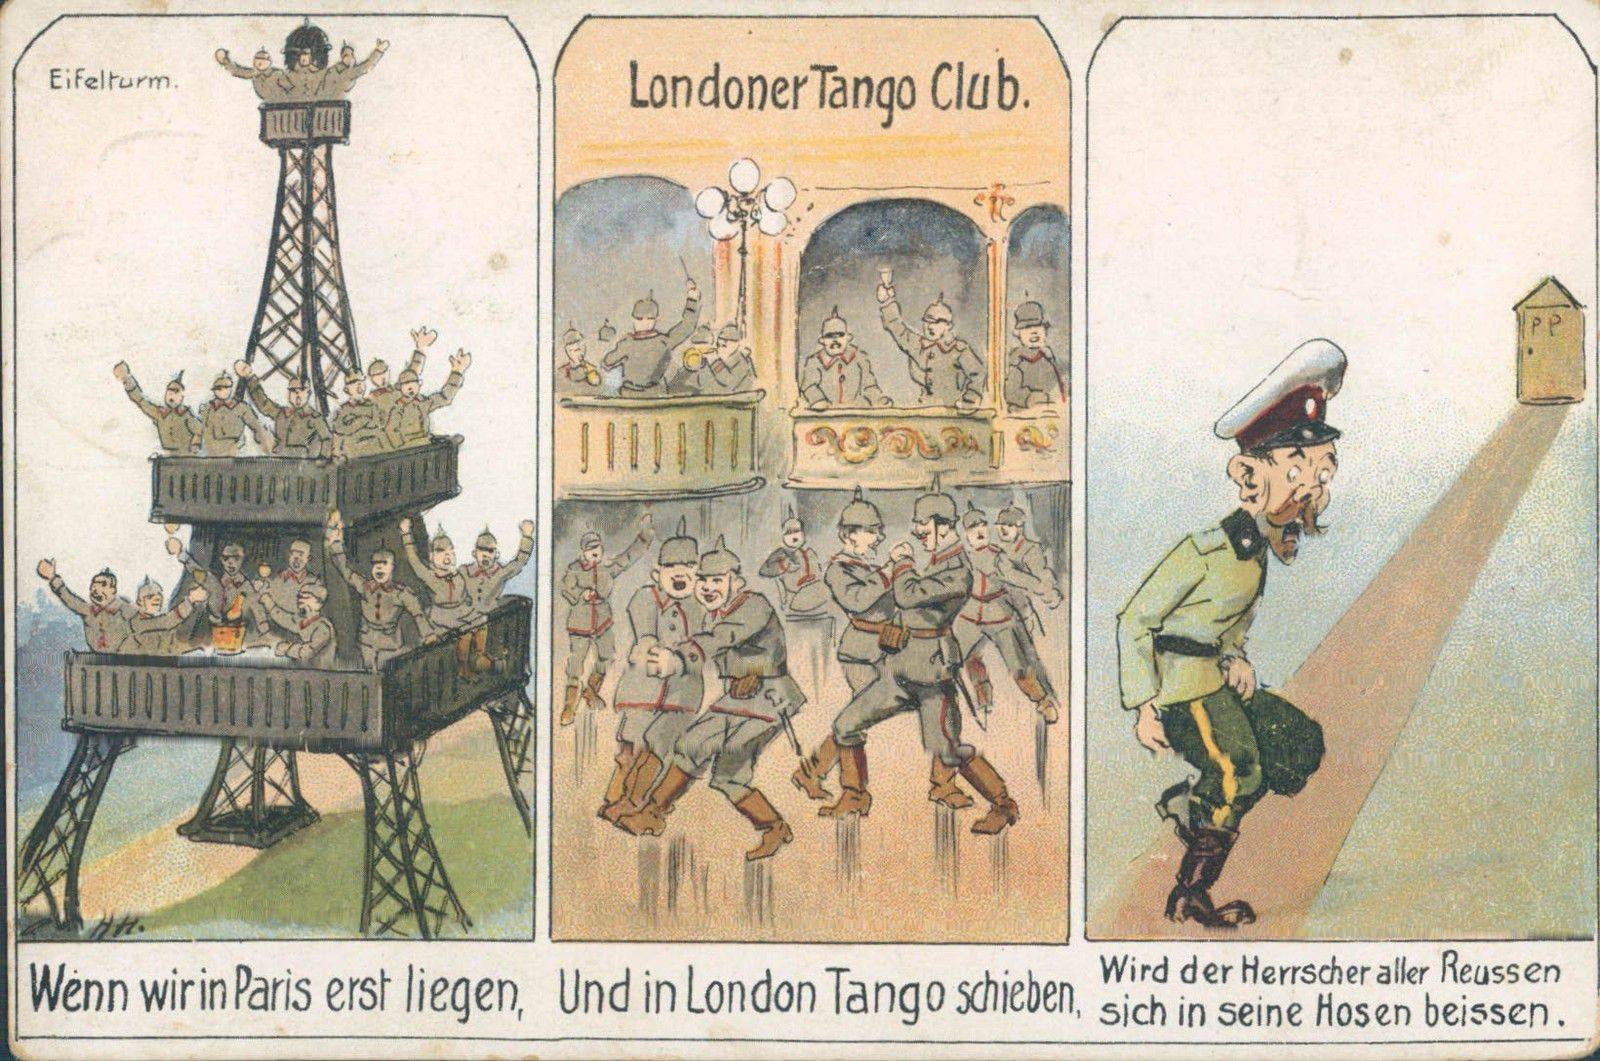 First World War German Propaganda Postcard showing Victorious Soldiers Dancing Tango with Each Other in defeated London